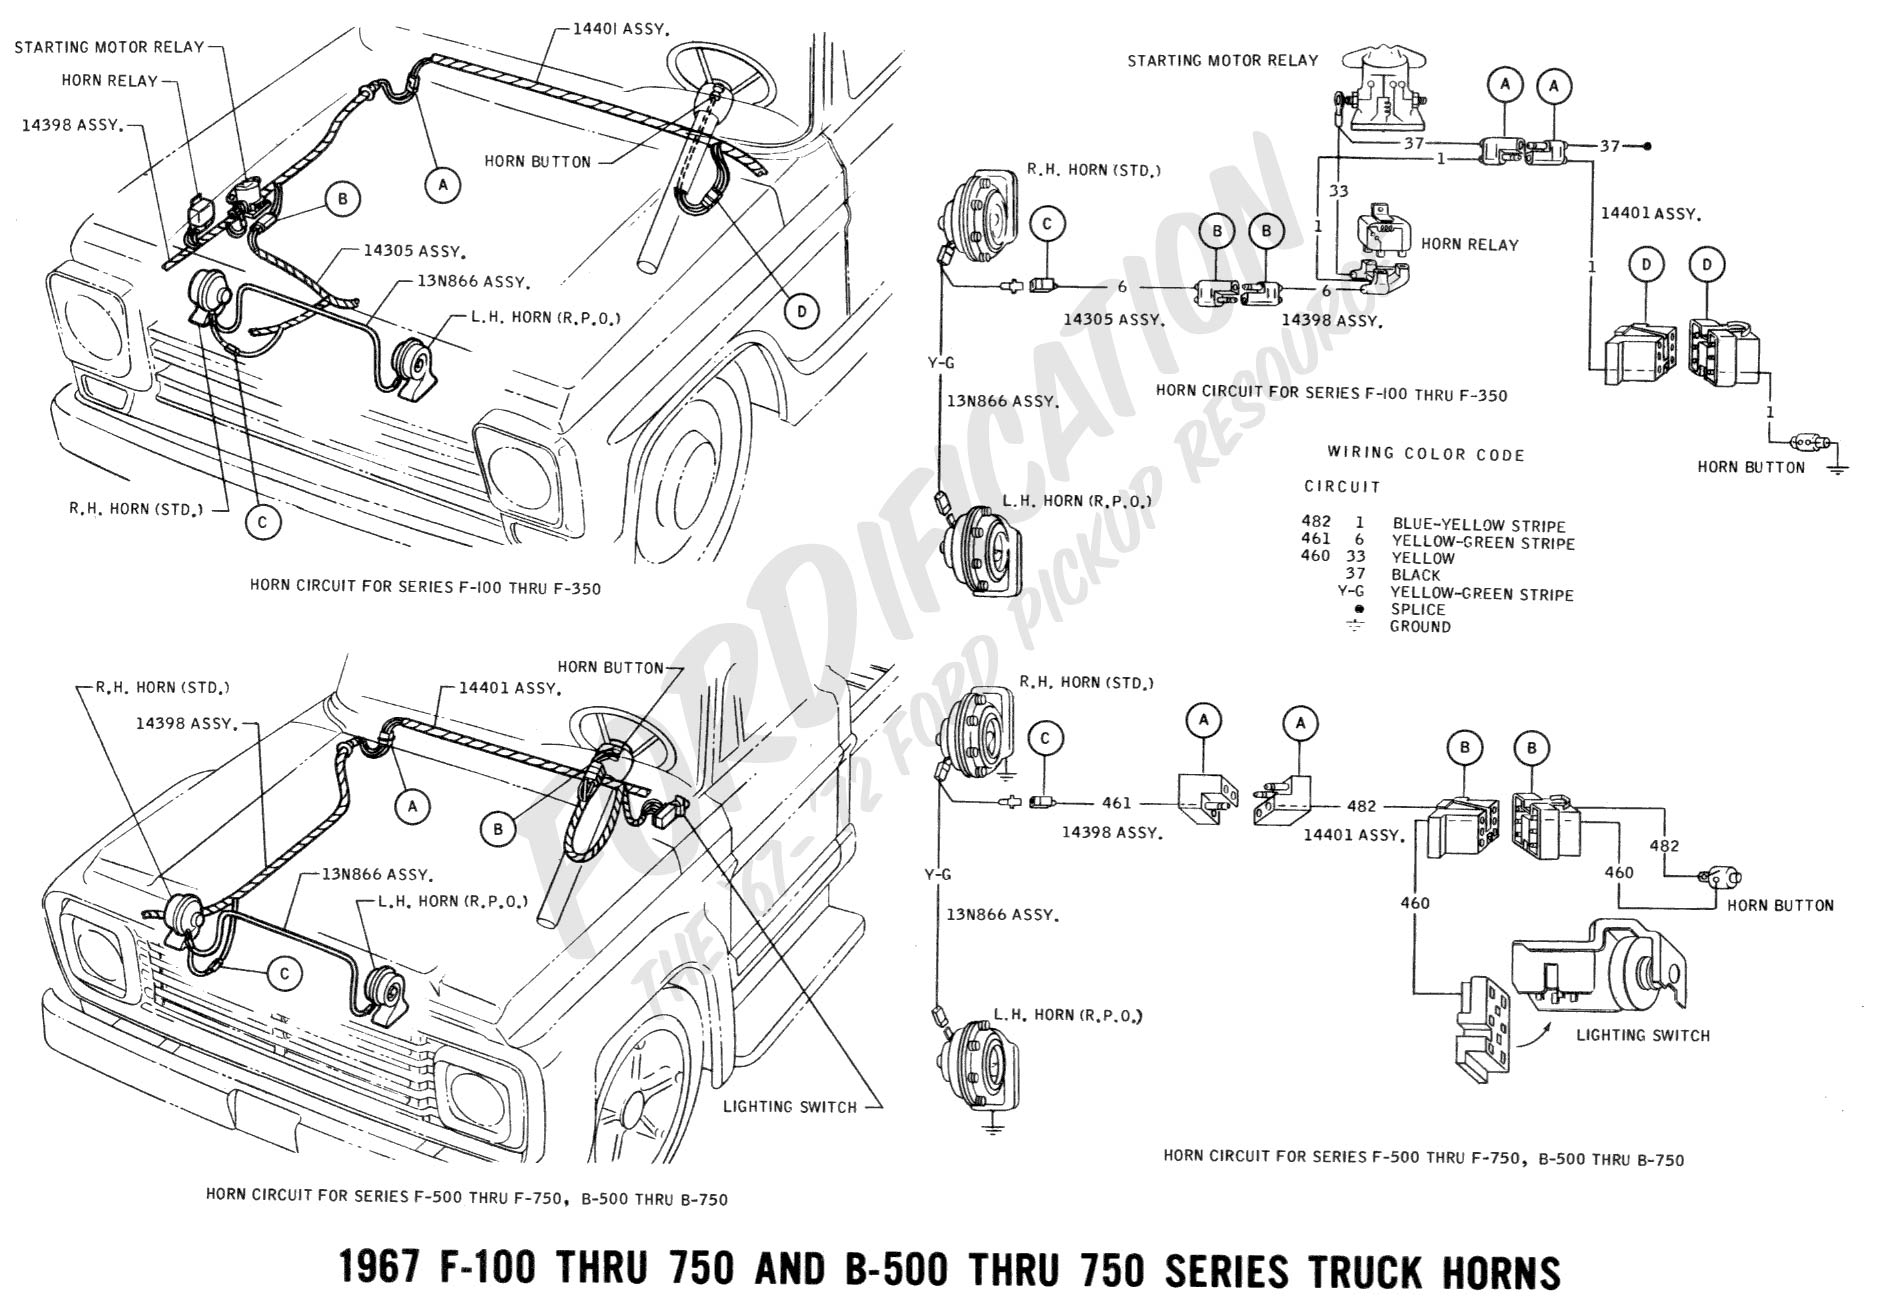 Ford F750 Wiring Auto Electrical Diagram 2010 Malibu Truck Technical Drawings And Schematics